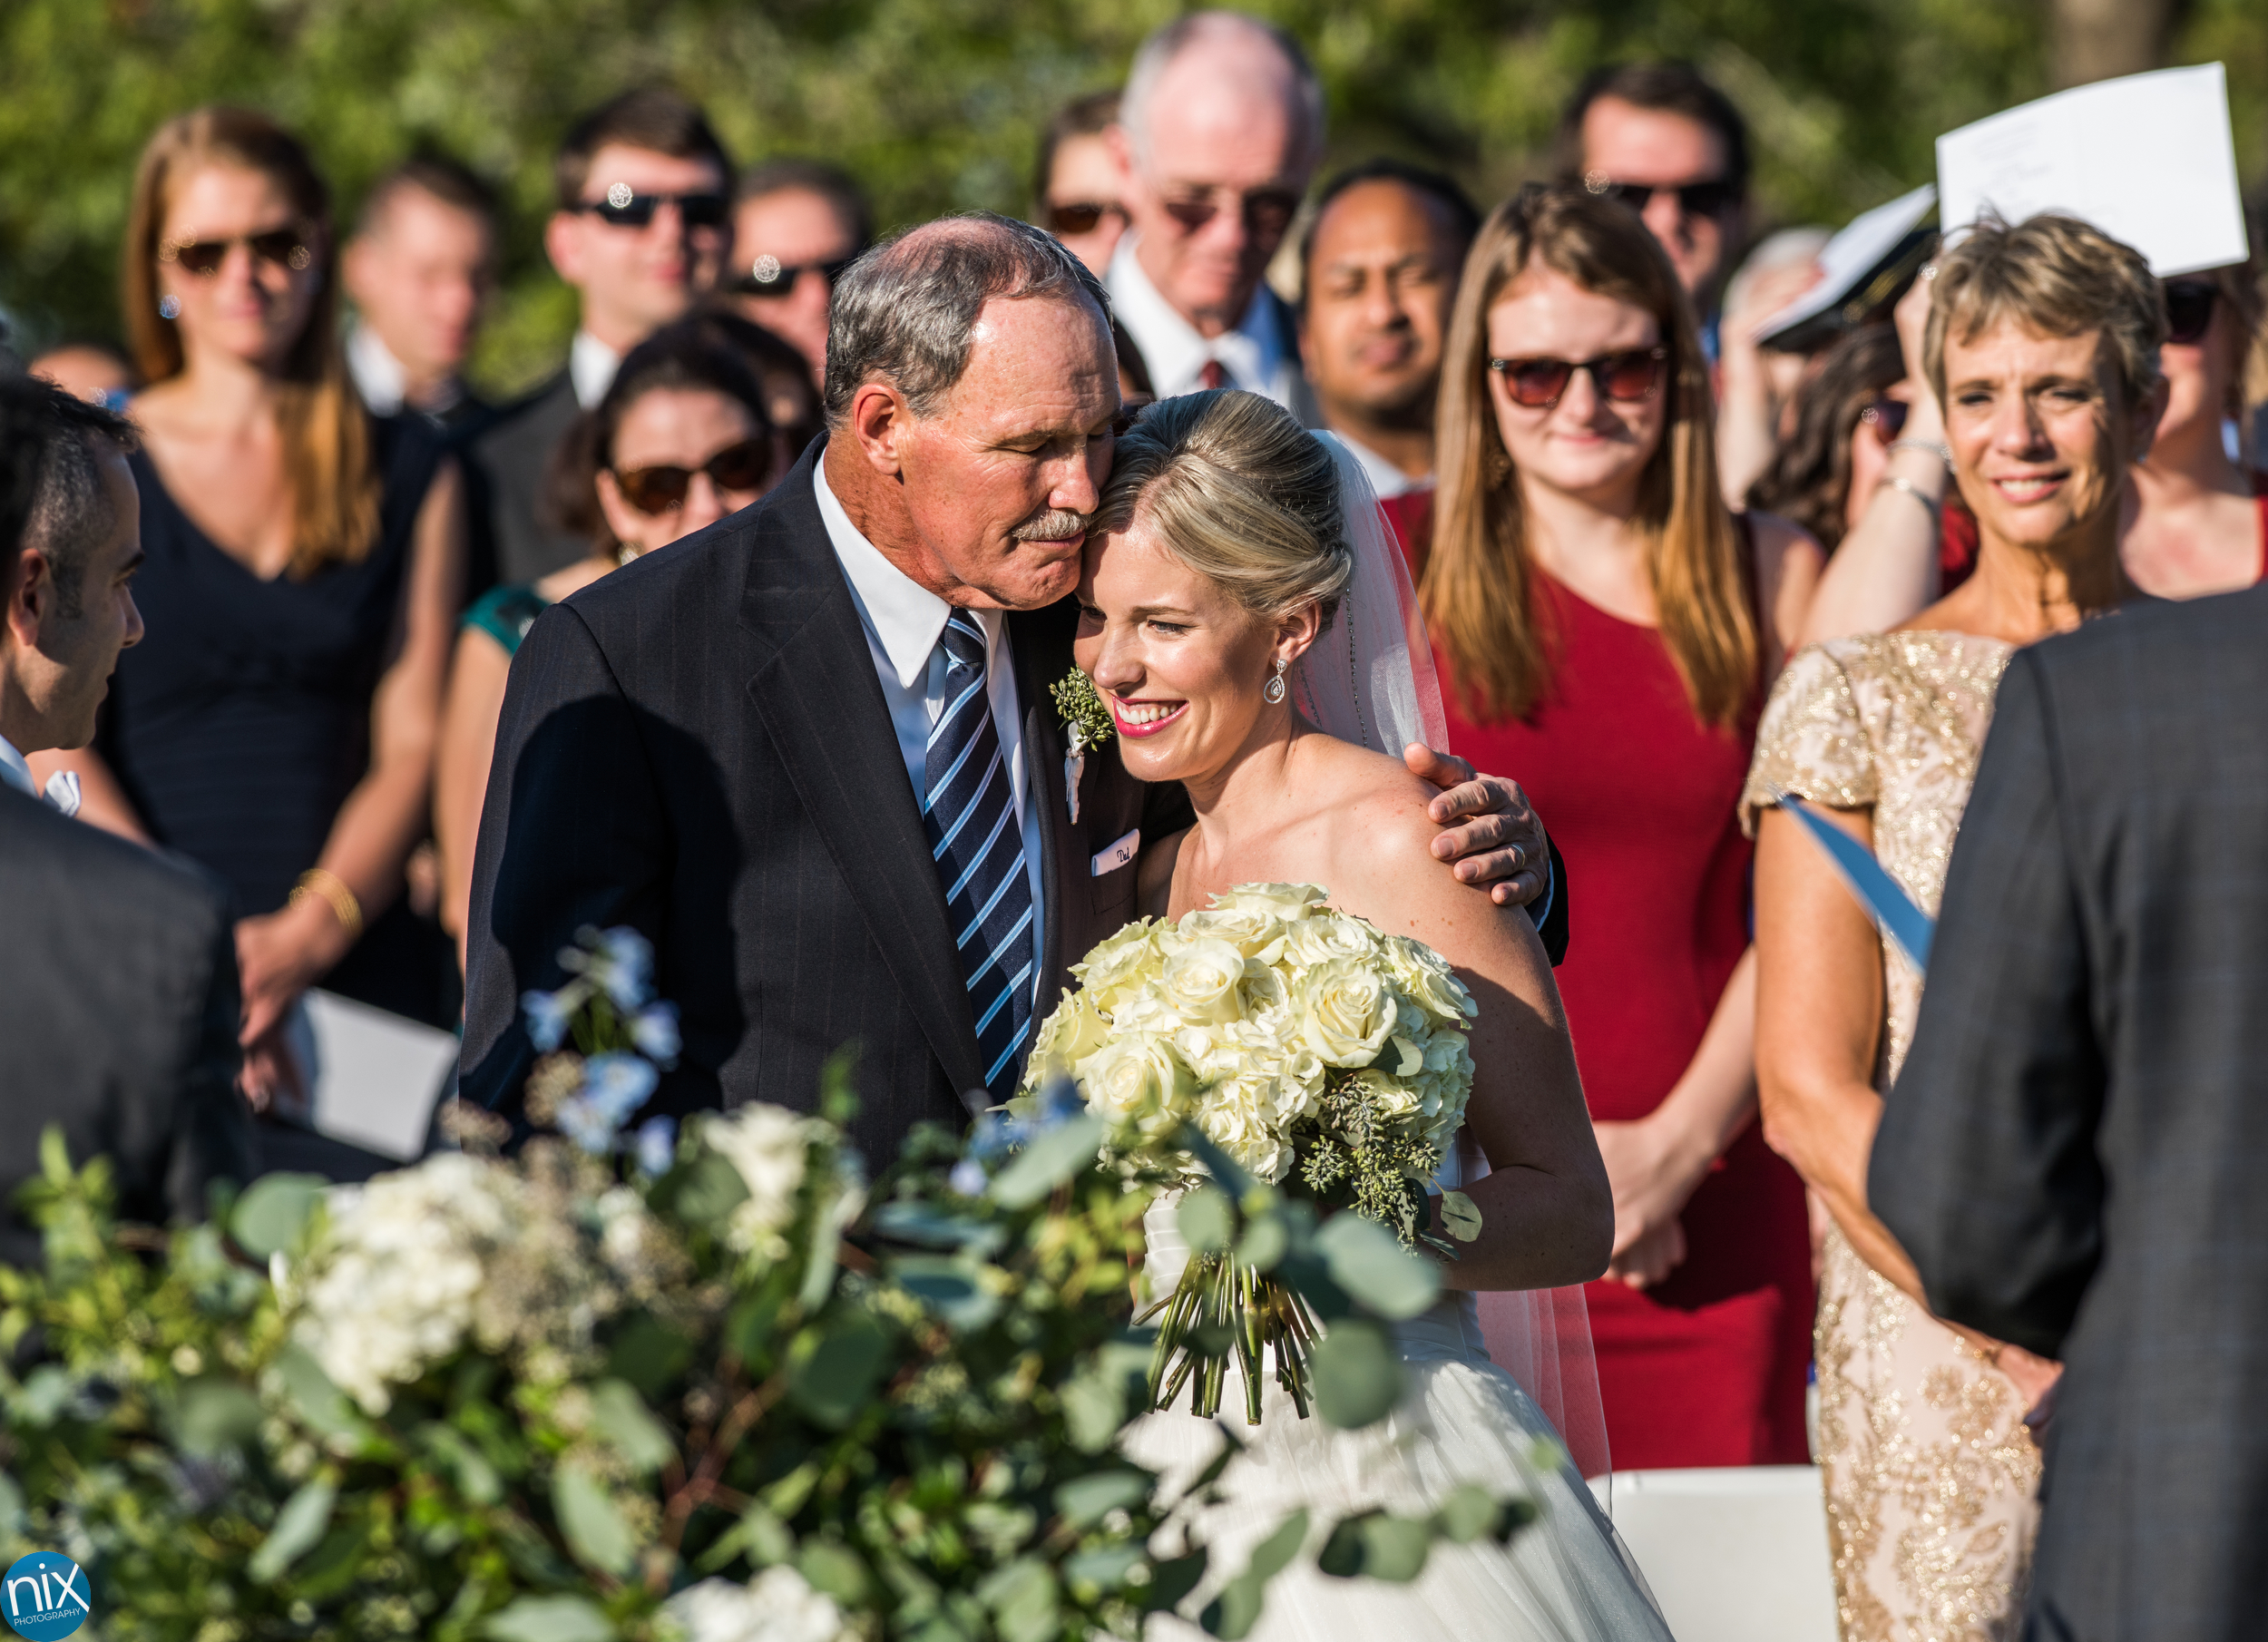 father hands off daughter at wedding at North Stone Country Club in Huntersville.jpg